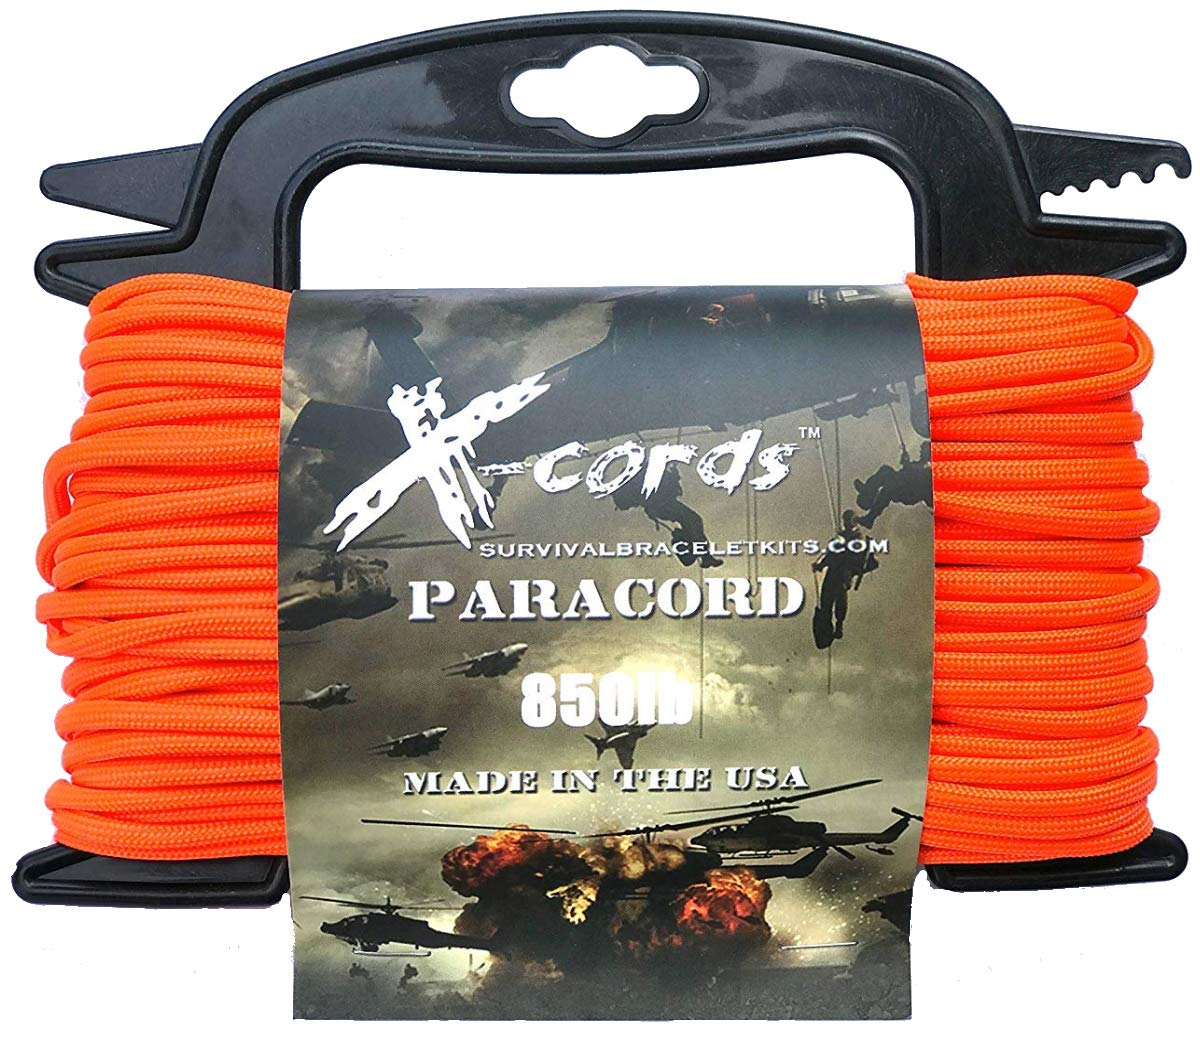 X-CORDS Paracord 850 Lb Stronger Than 550 and 750 Made by Us Government Certified Contractor (100' Orange ON Spool 850LB) by X-CORDS